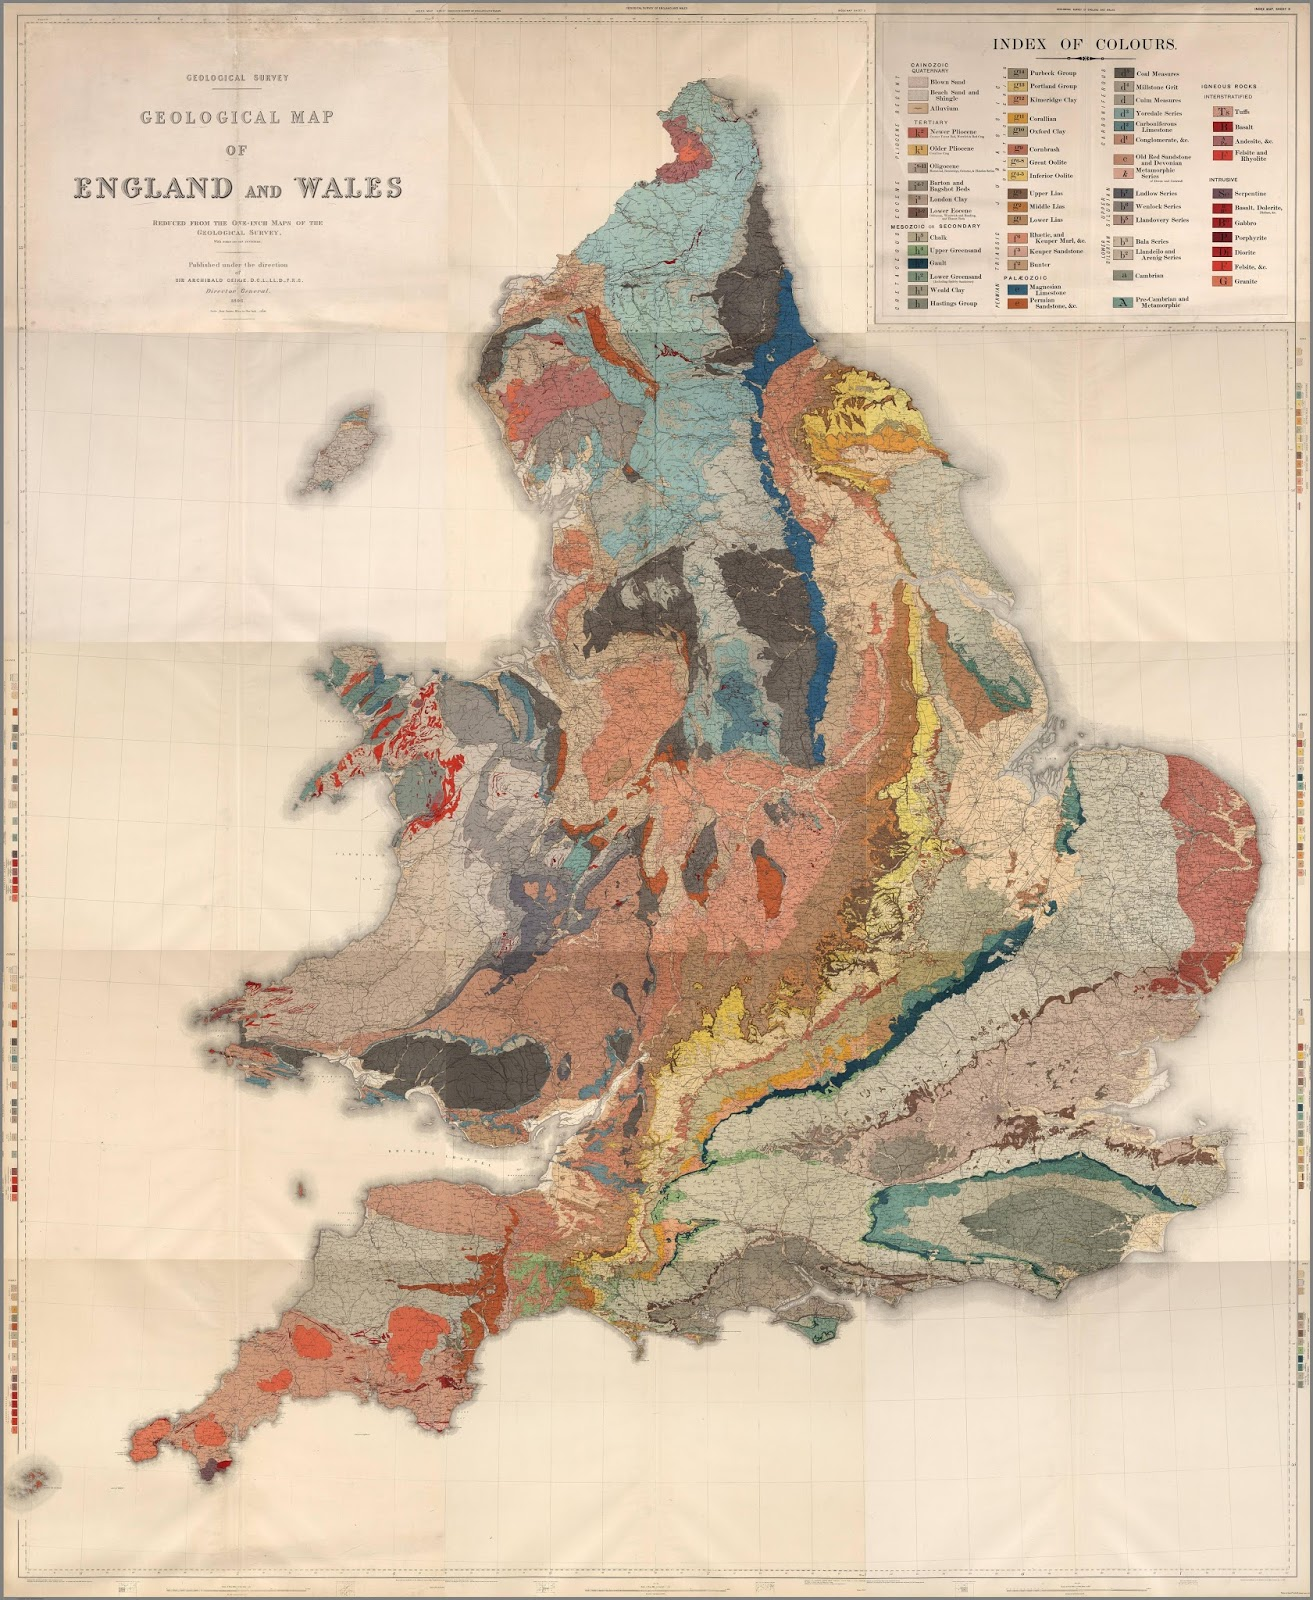 Geological Map of England and Wales (1896)